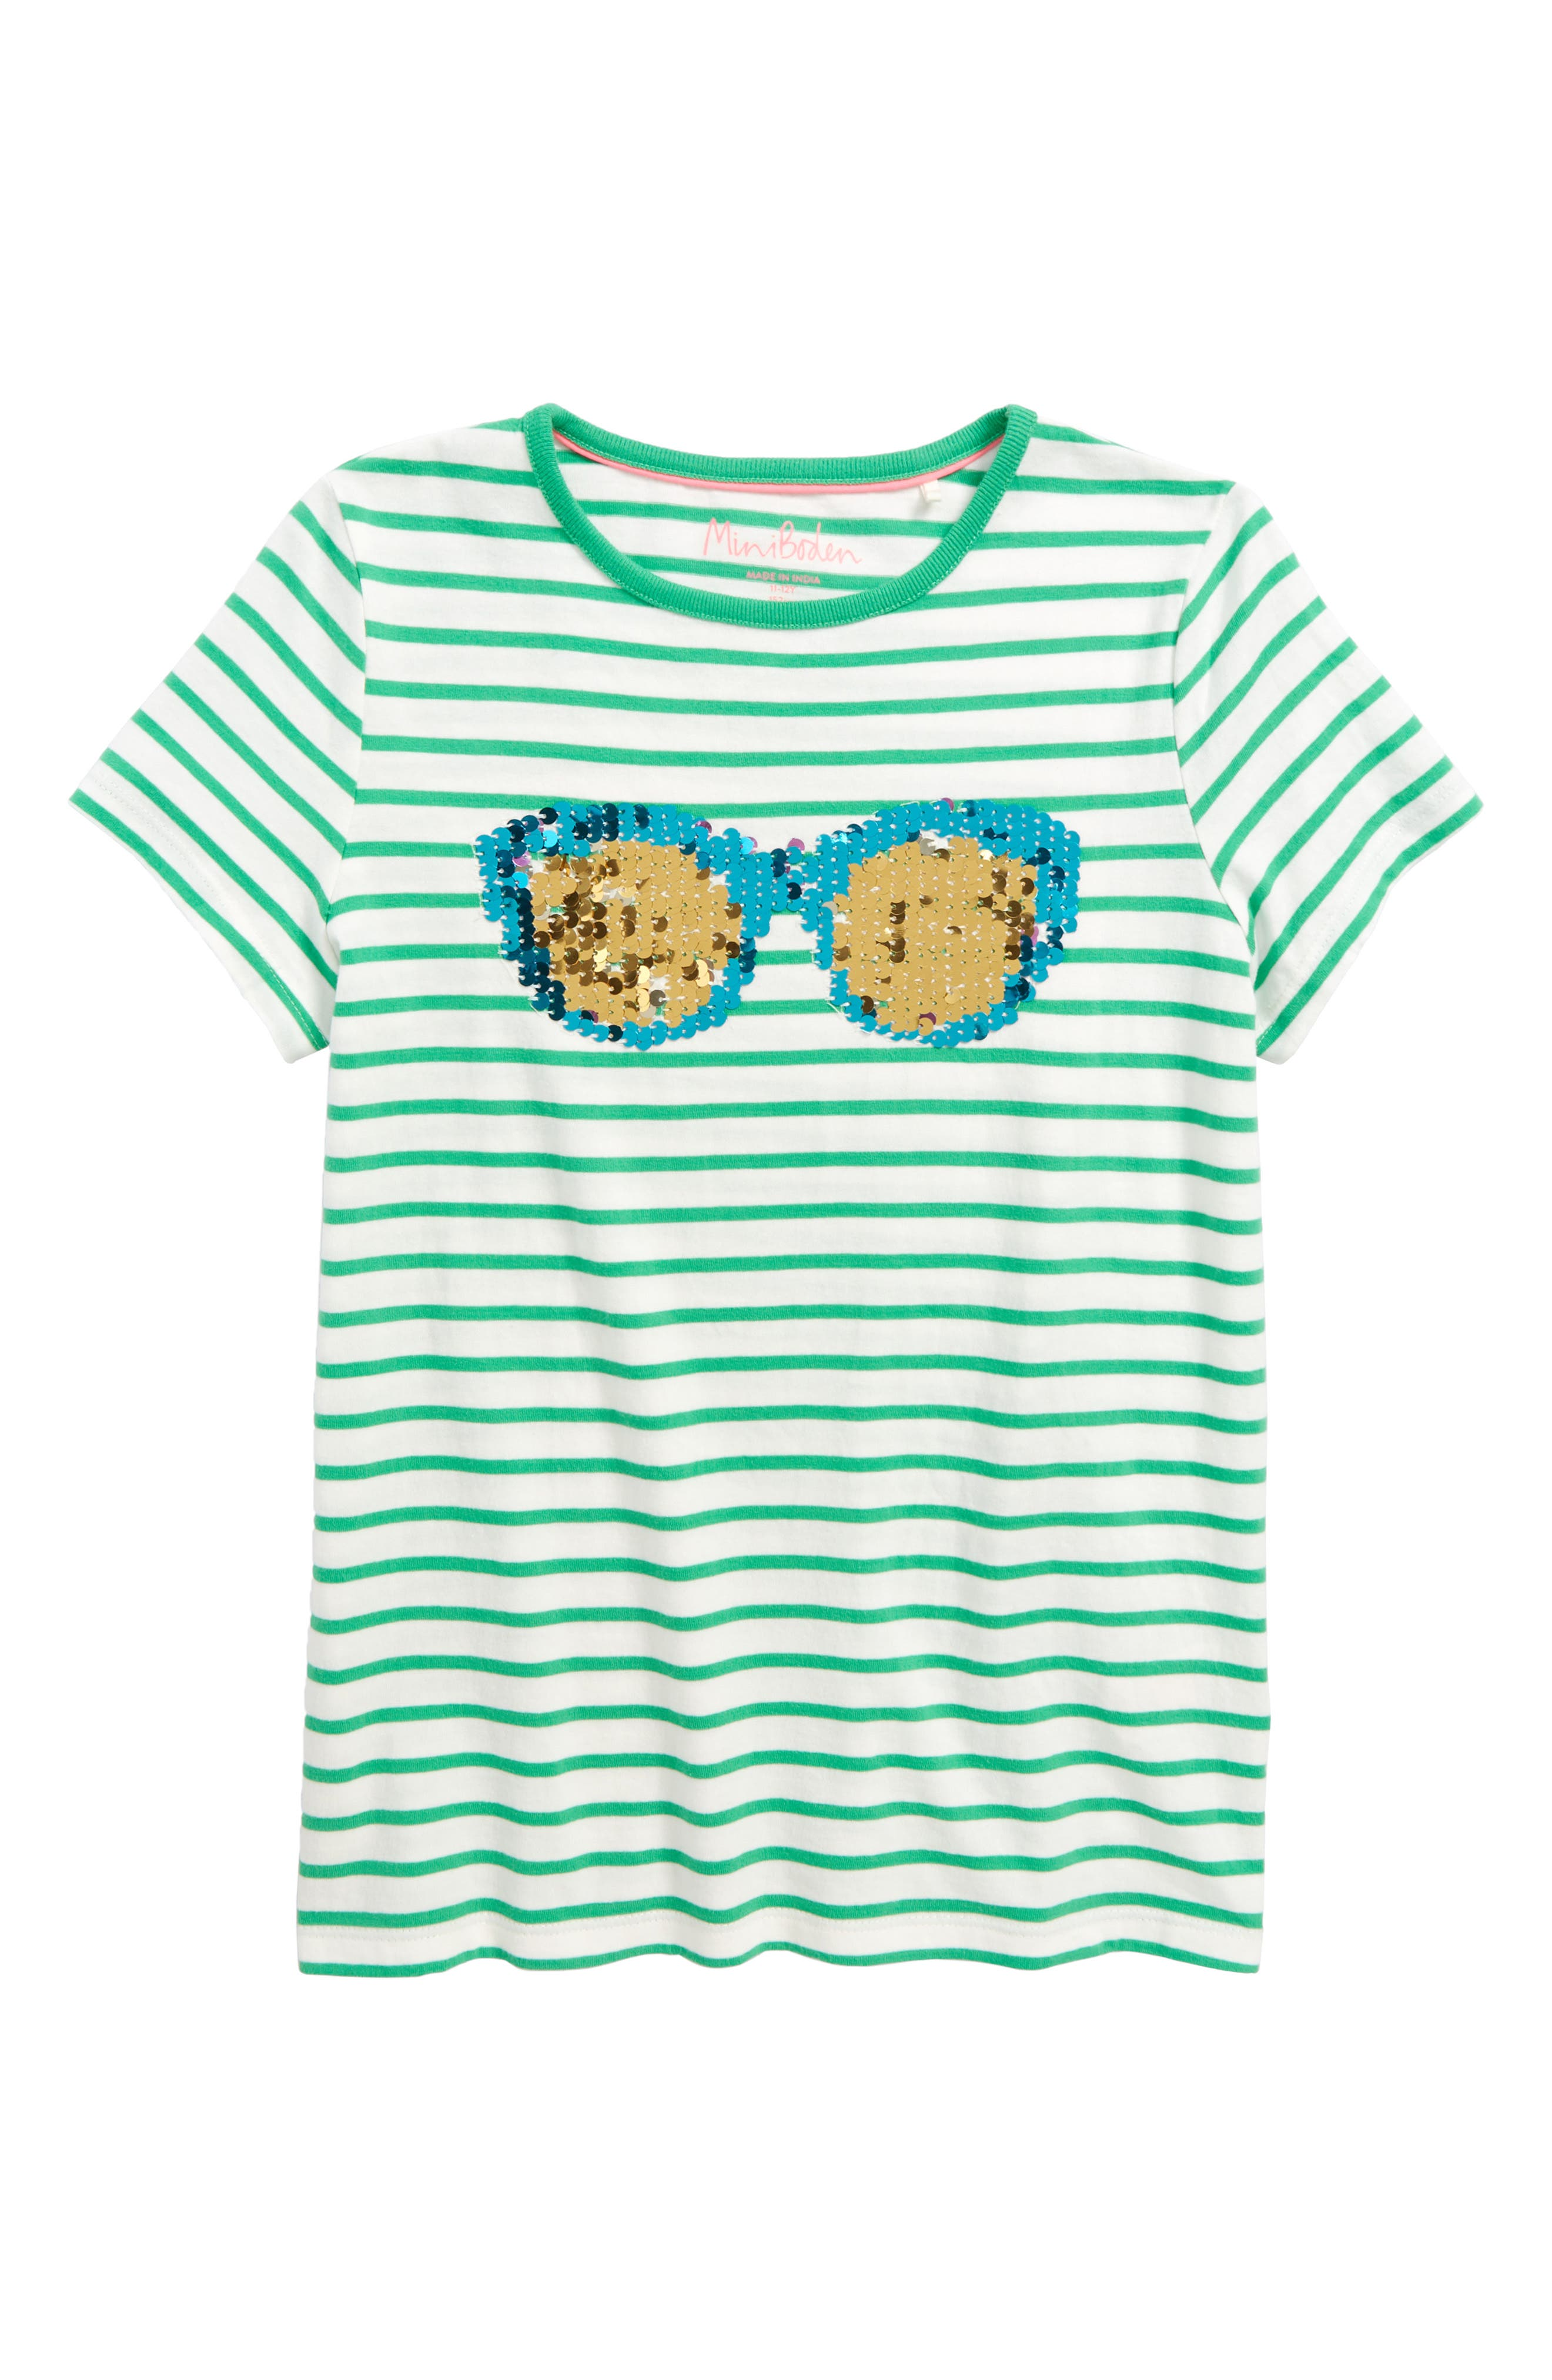 Sunny Sequin Tee,                         Main,                         color, Grnivory/ Peppermint Green